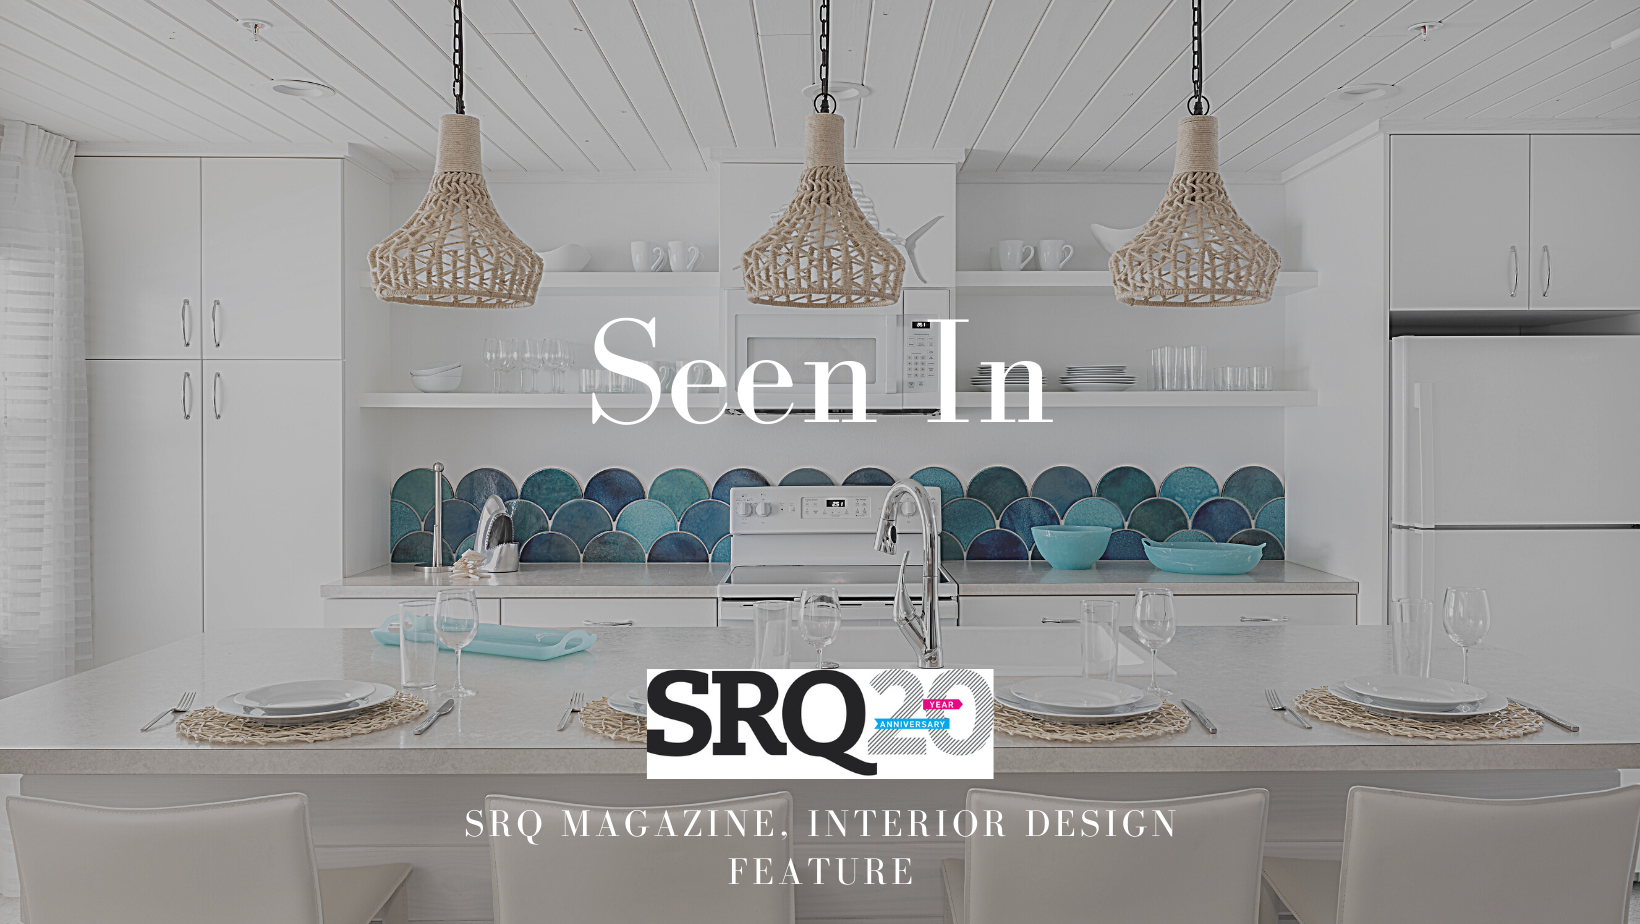 Orange Moon Interiors SRQ Magazine interior design feature